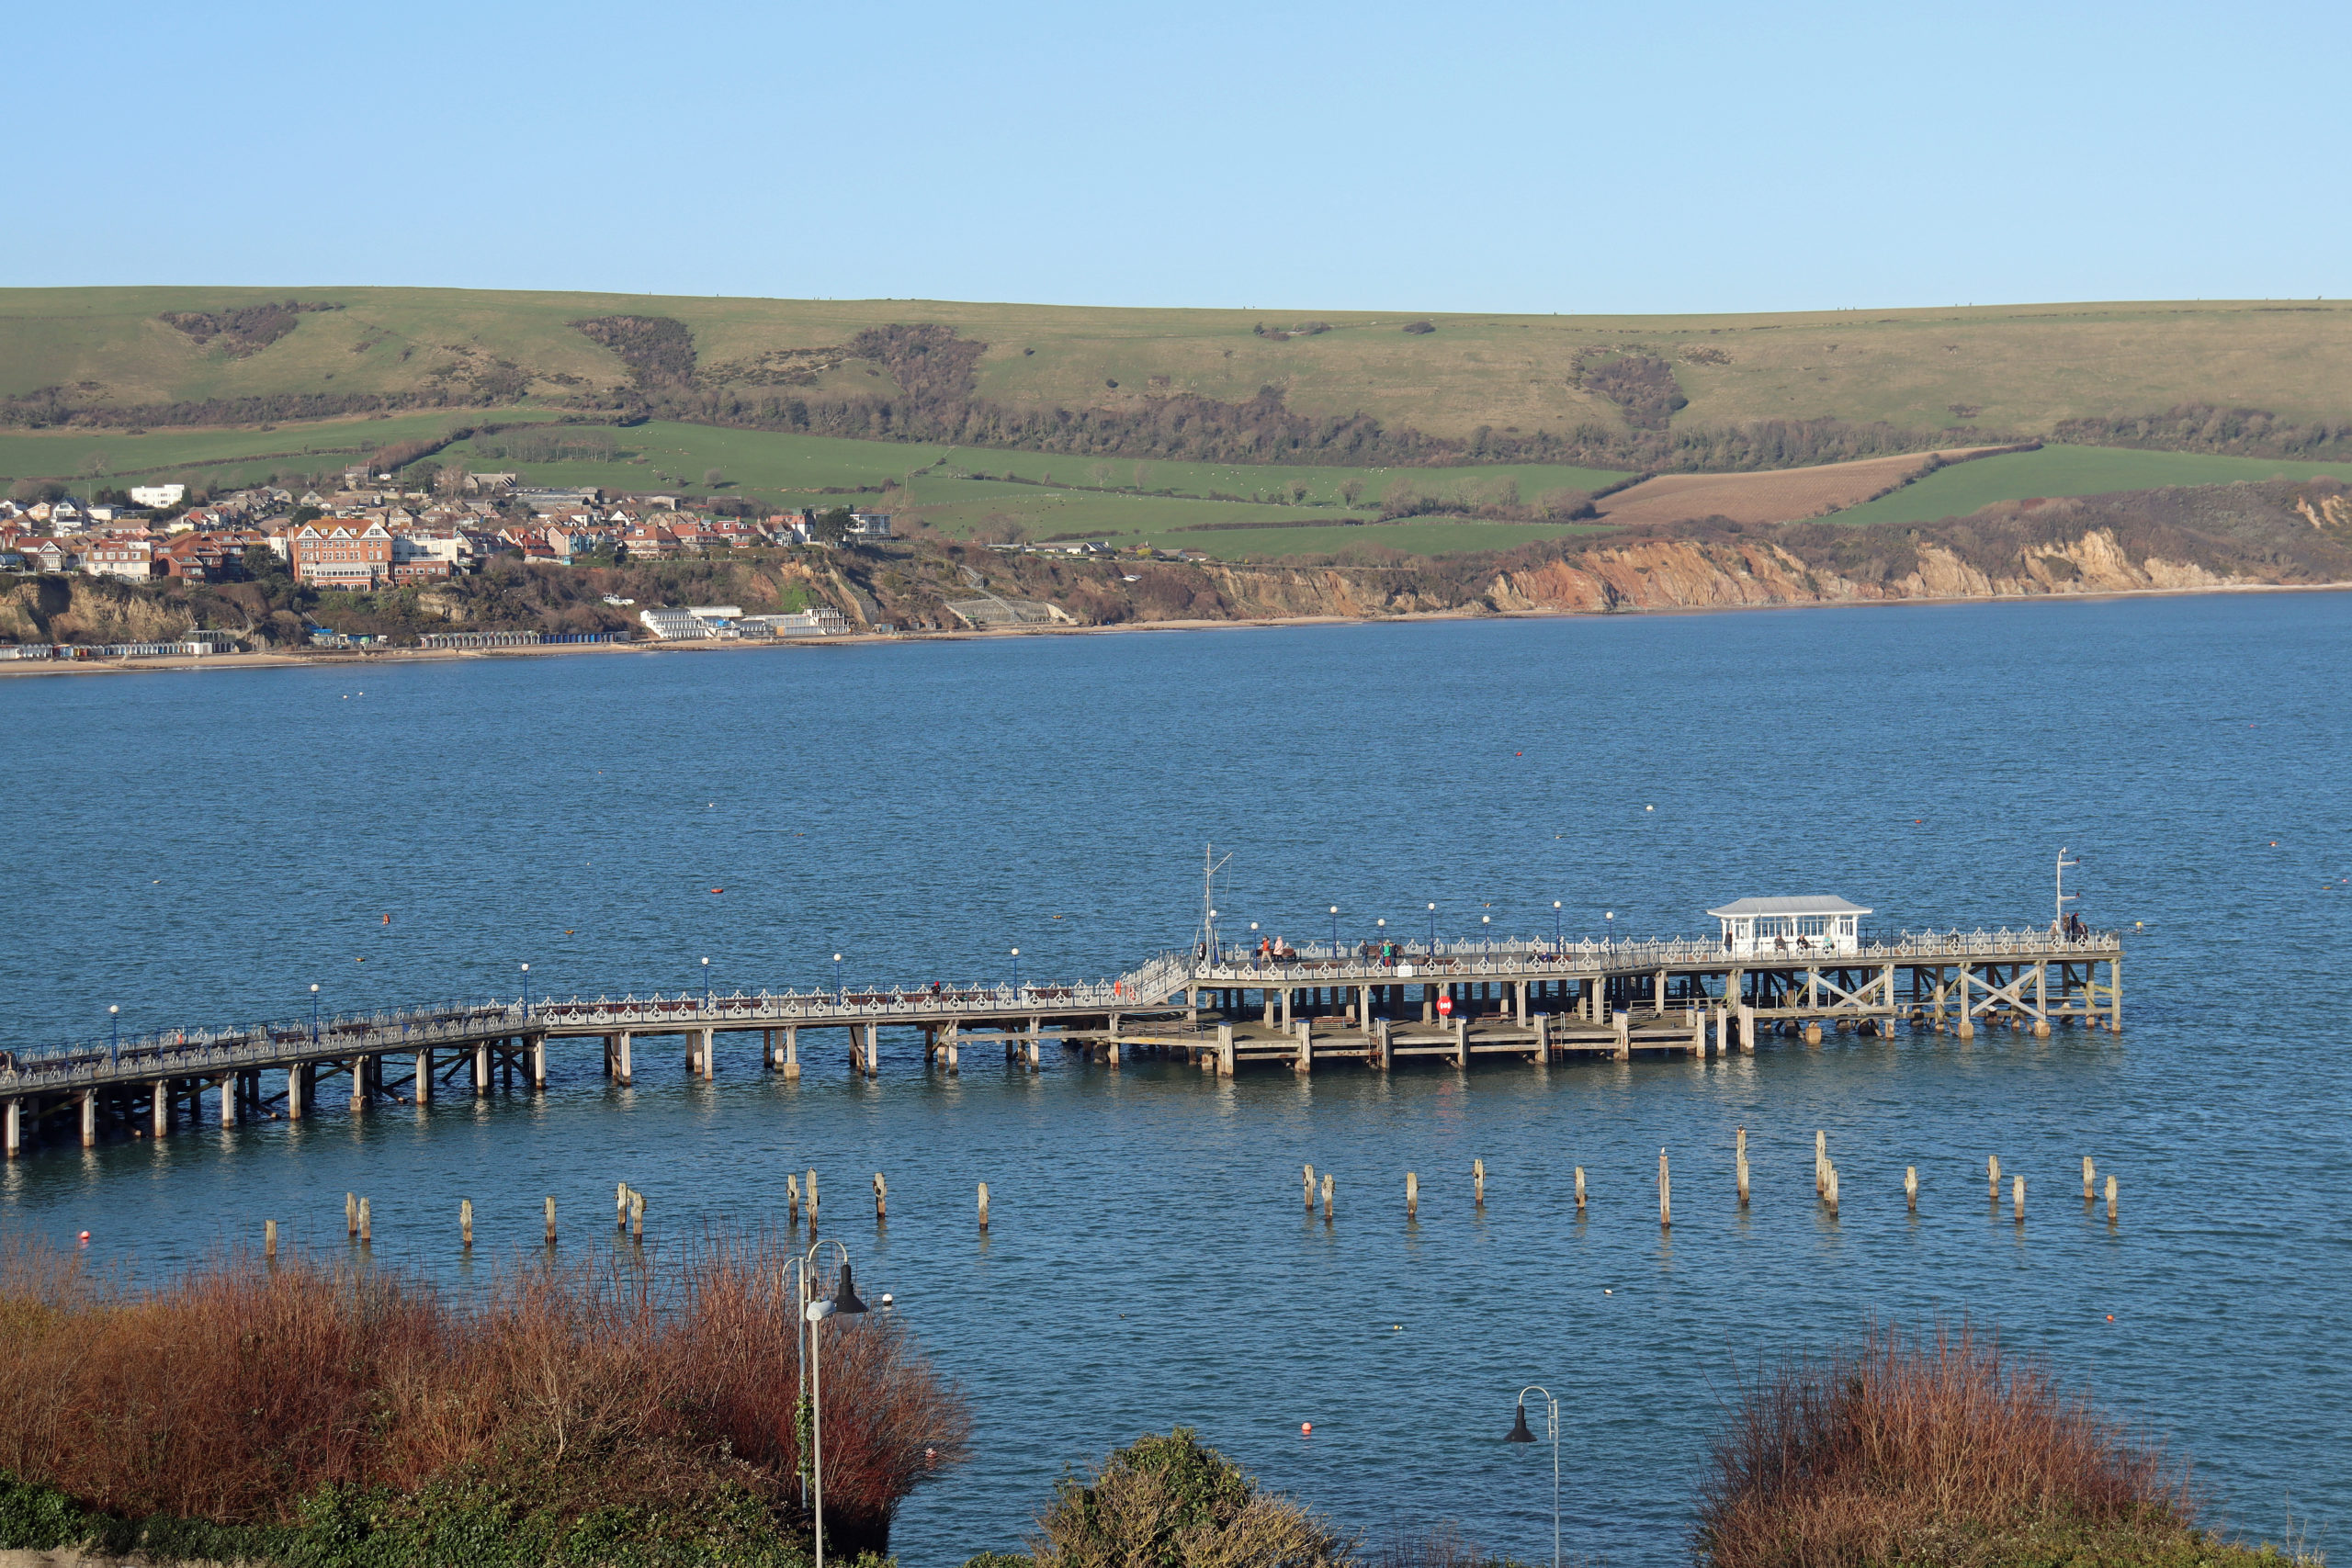 View of Swanage Pier from the Downs